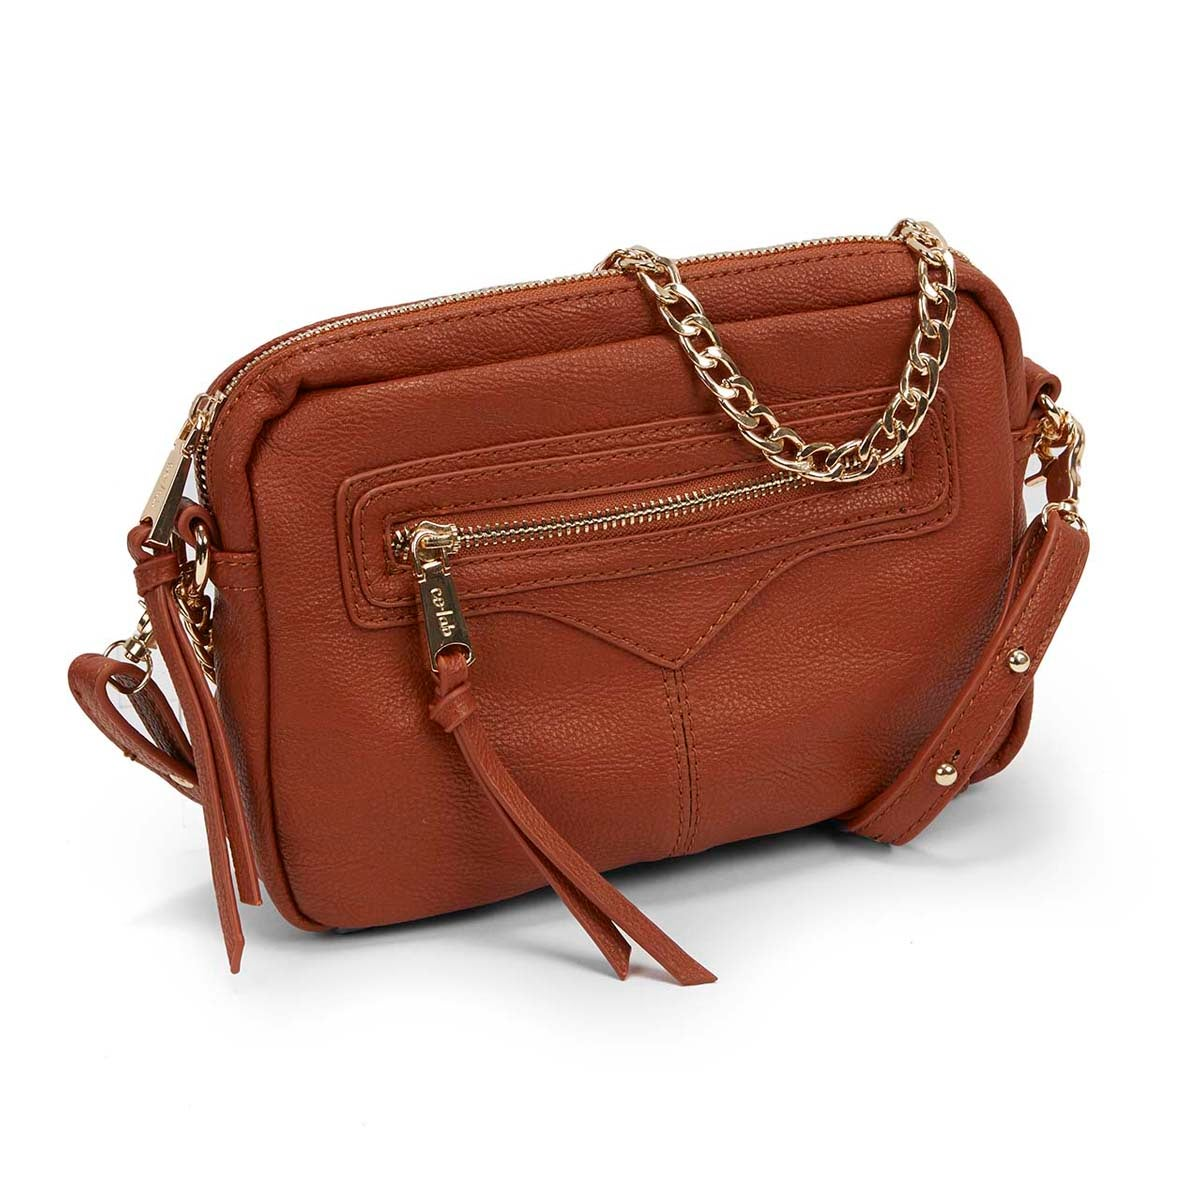 Lds Zip Zip cognac cross body bag